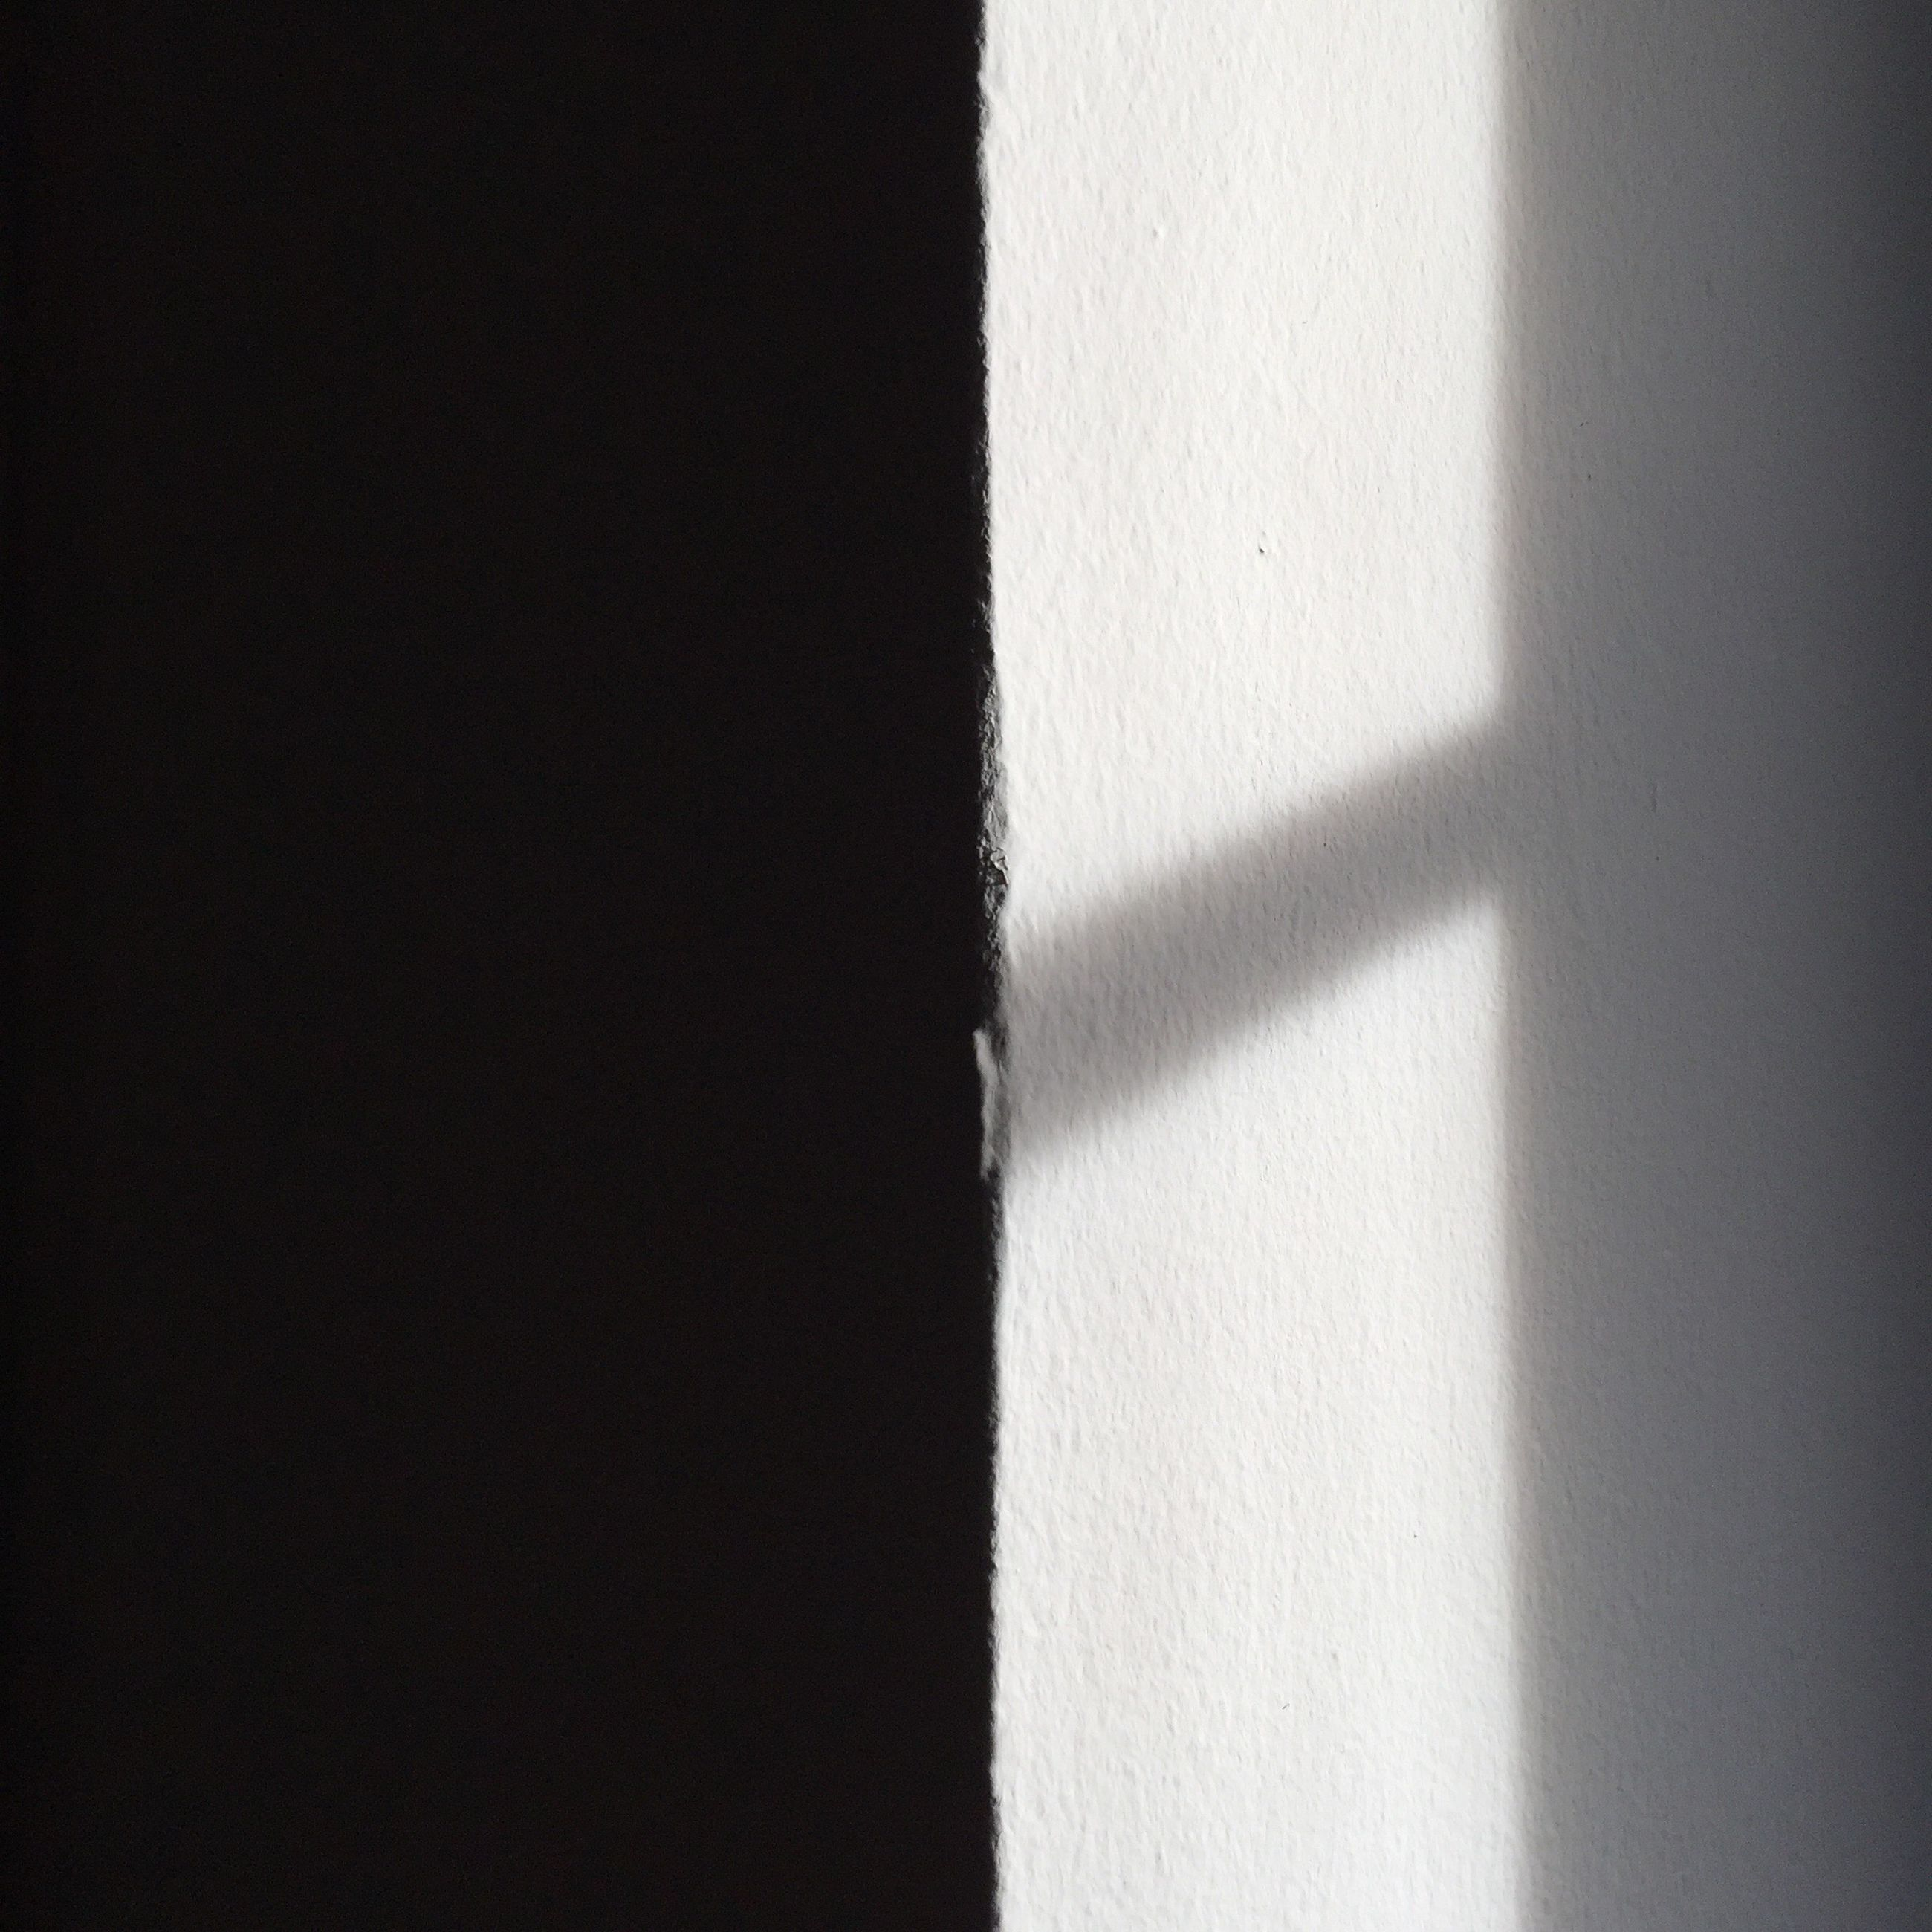 shadow, indoors, no people, built structure, close-up, architecture, day, ajar